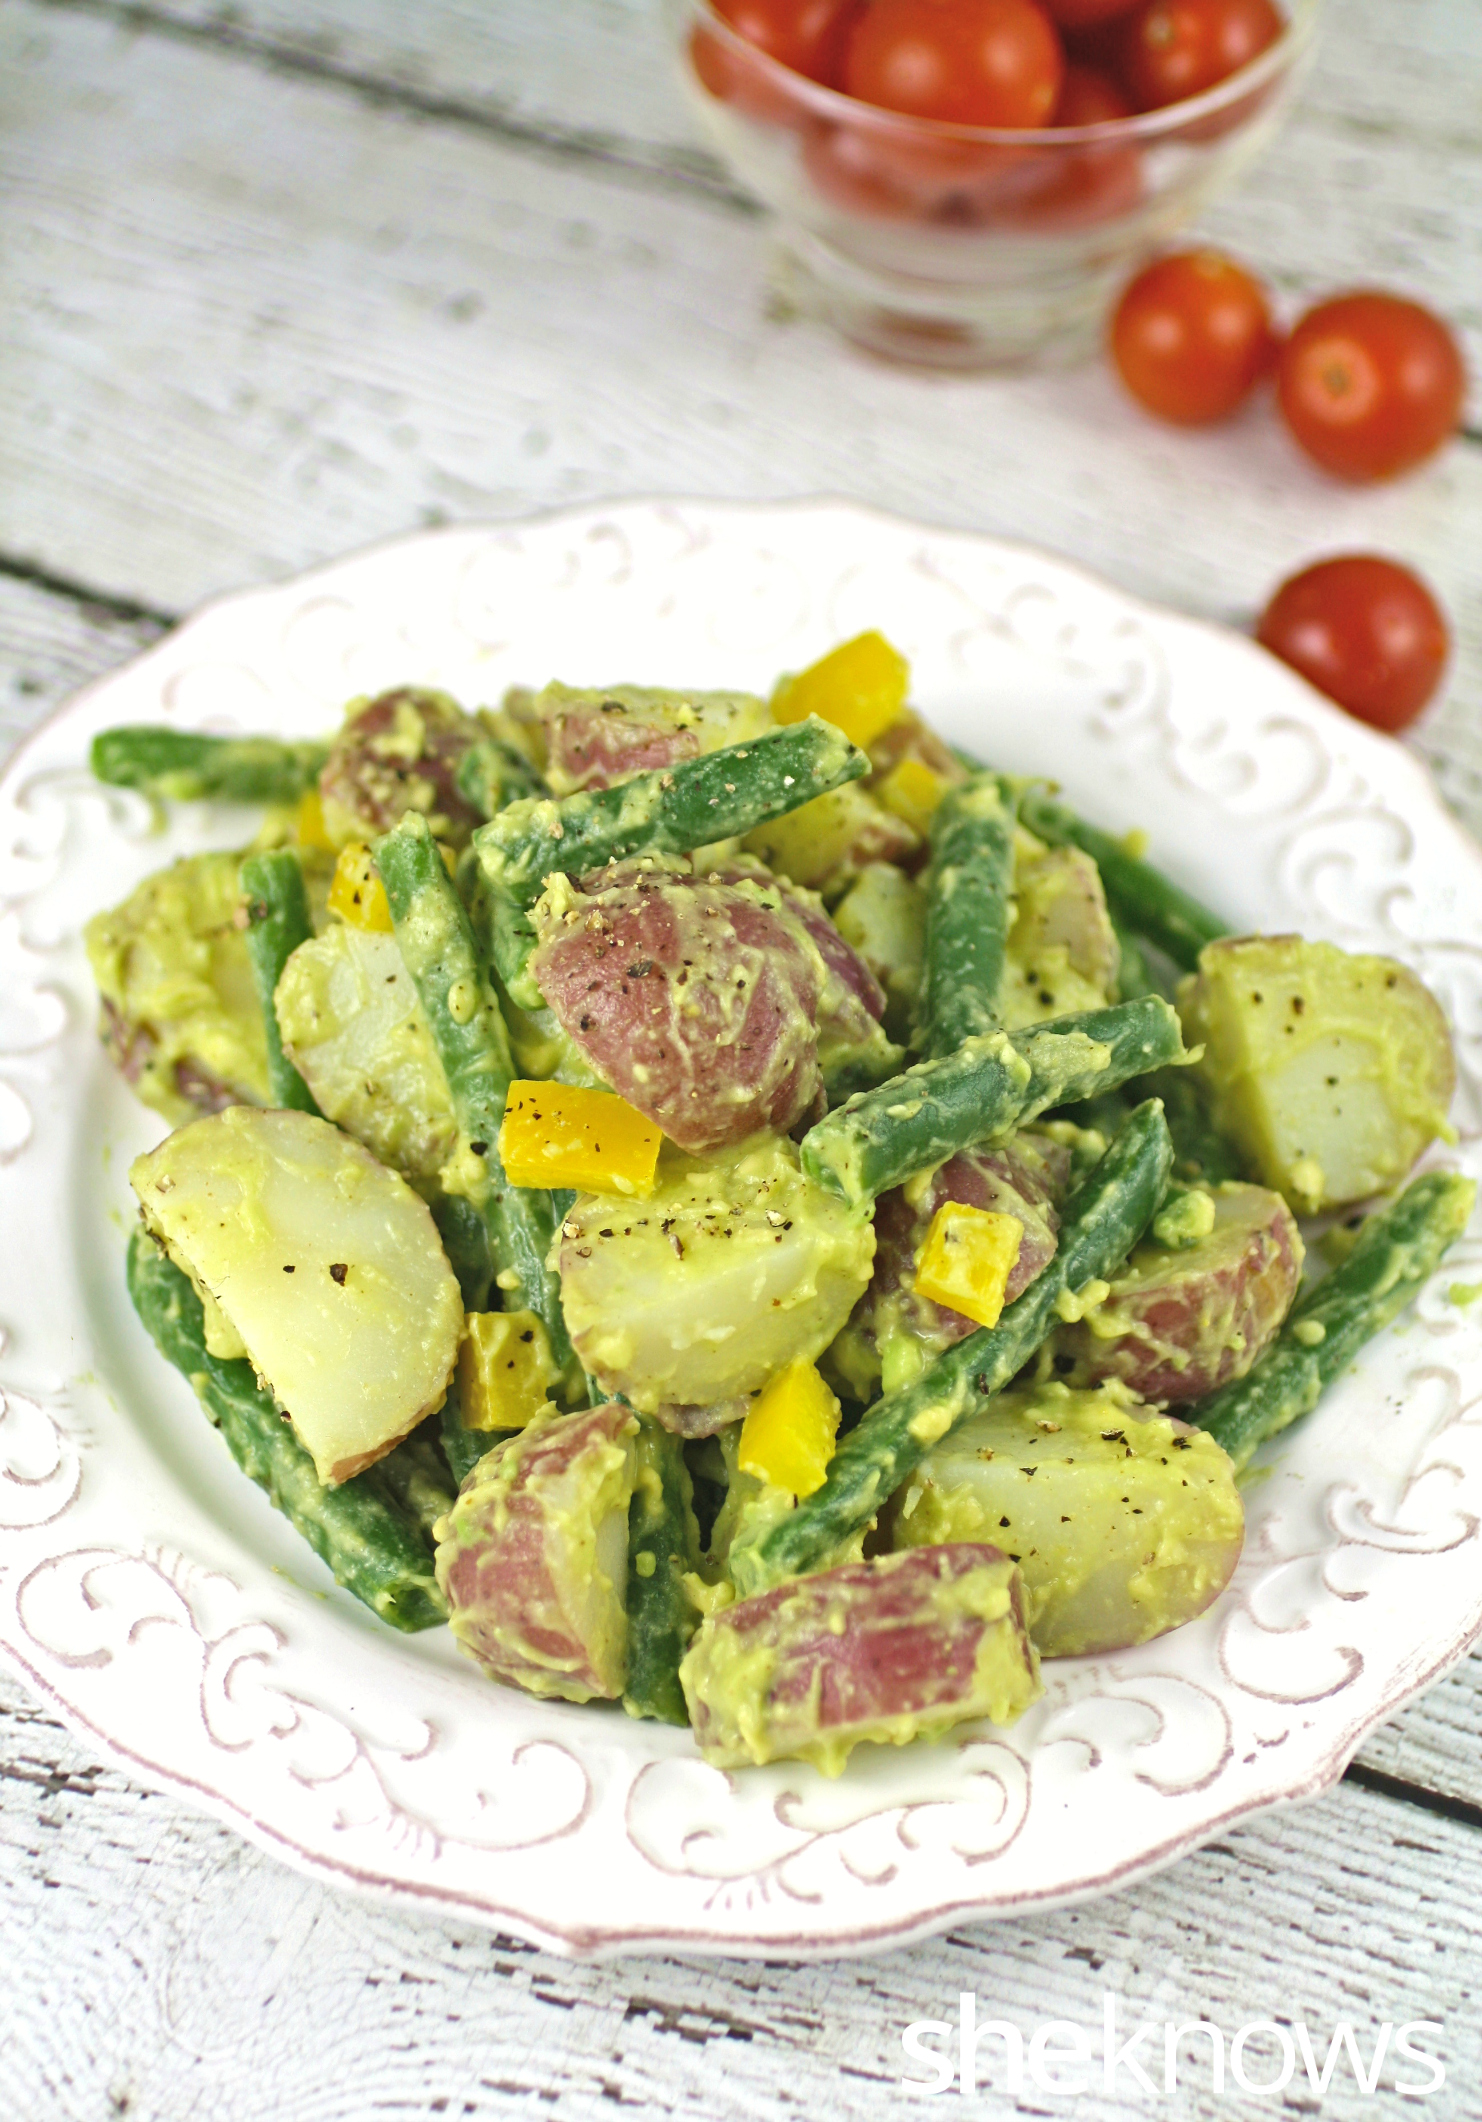 Get ready for your next gathering and serve this Meatless Monday vegan potato salad with avocado dressing